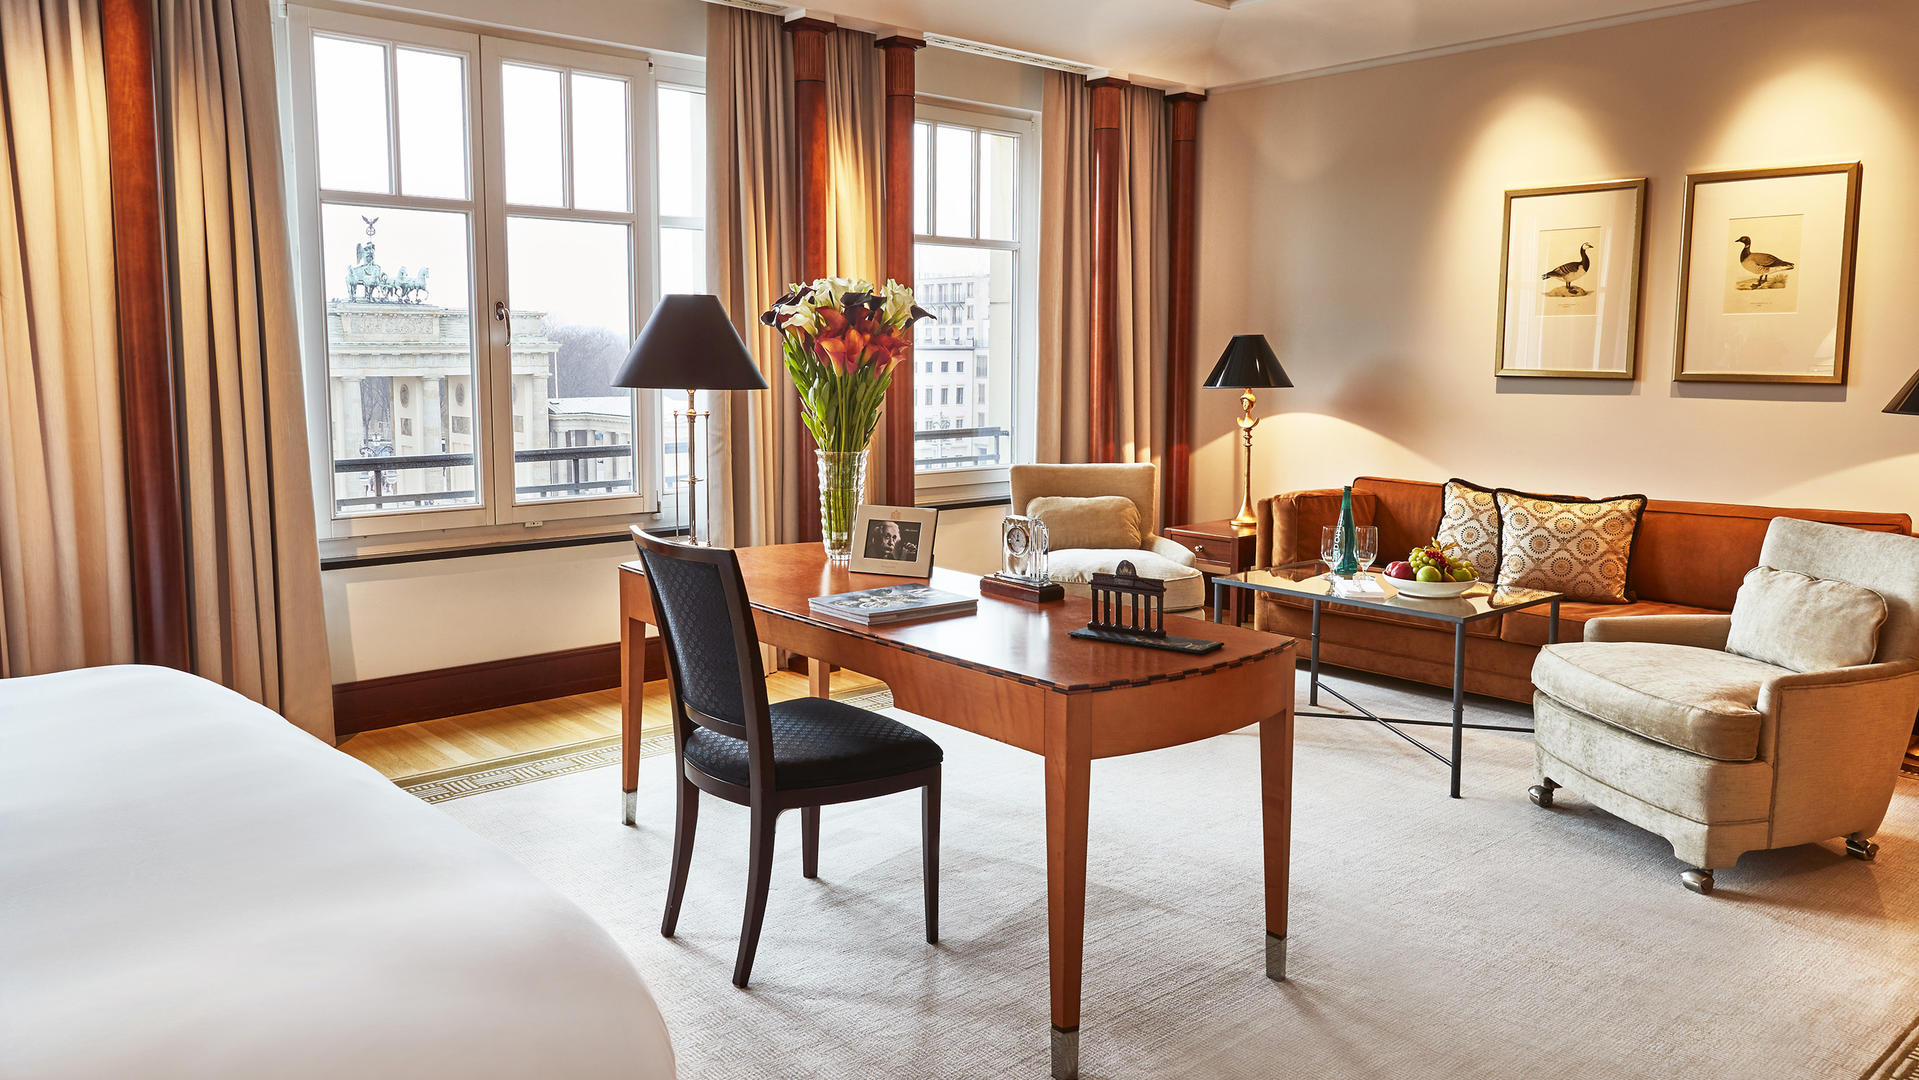 Junior Suite Brandenburger Tor 2018